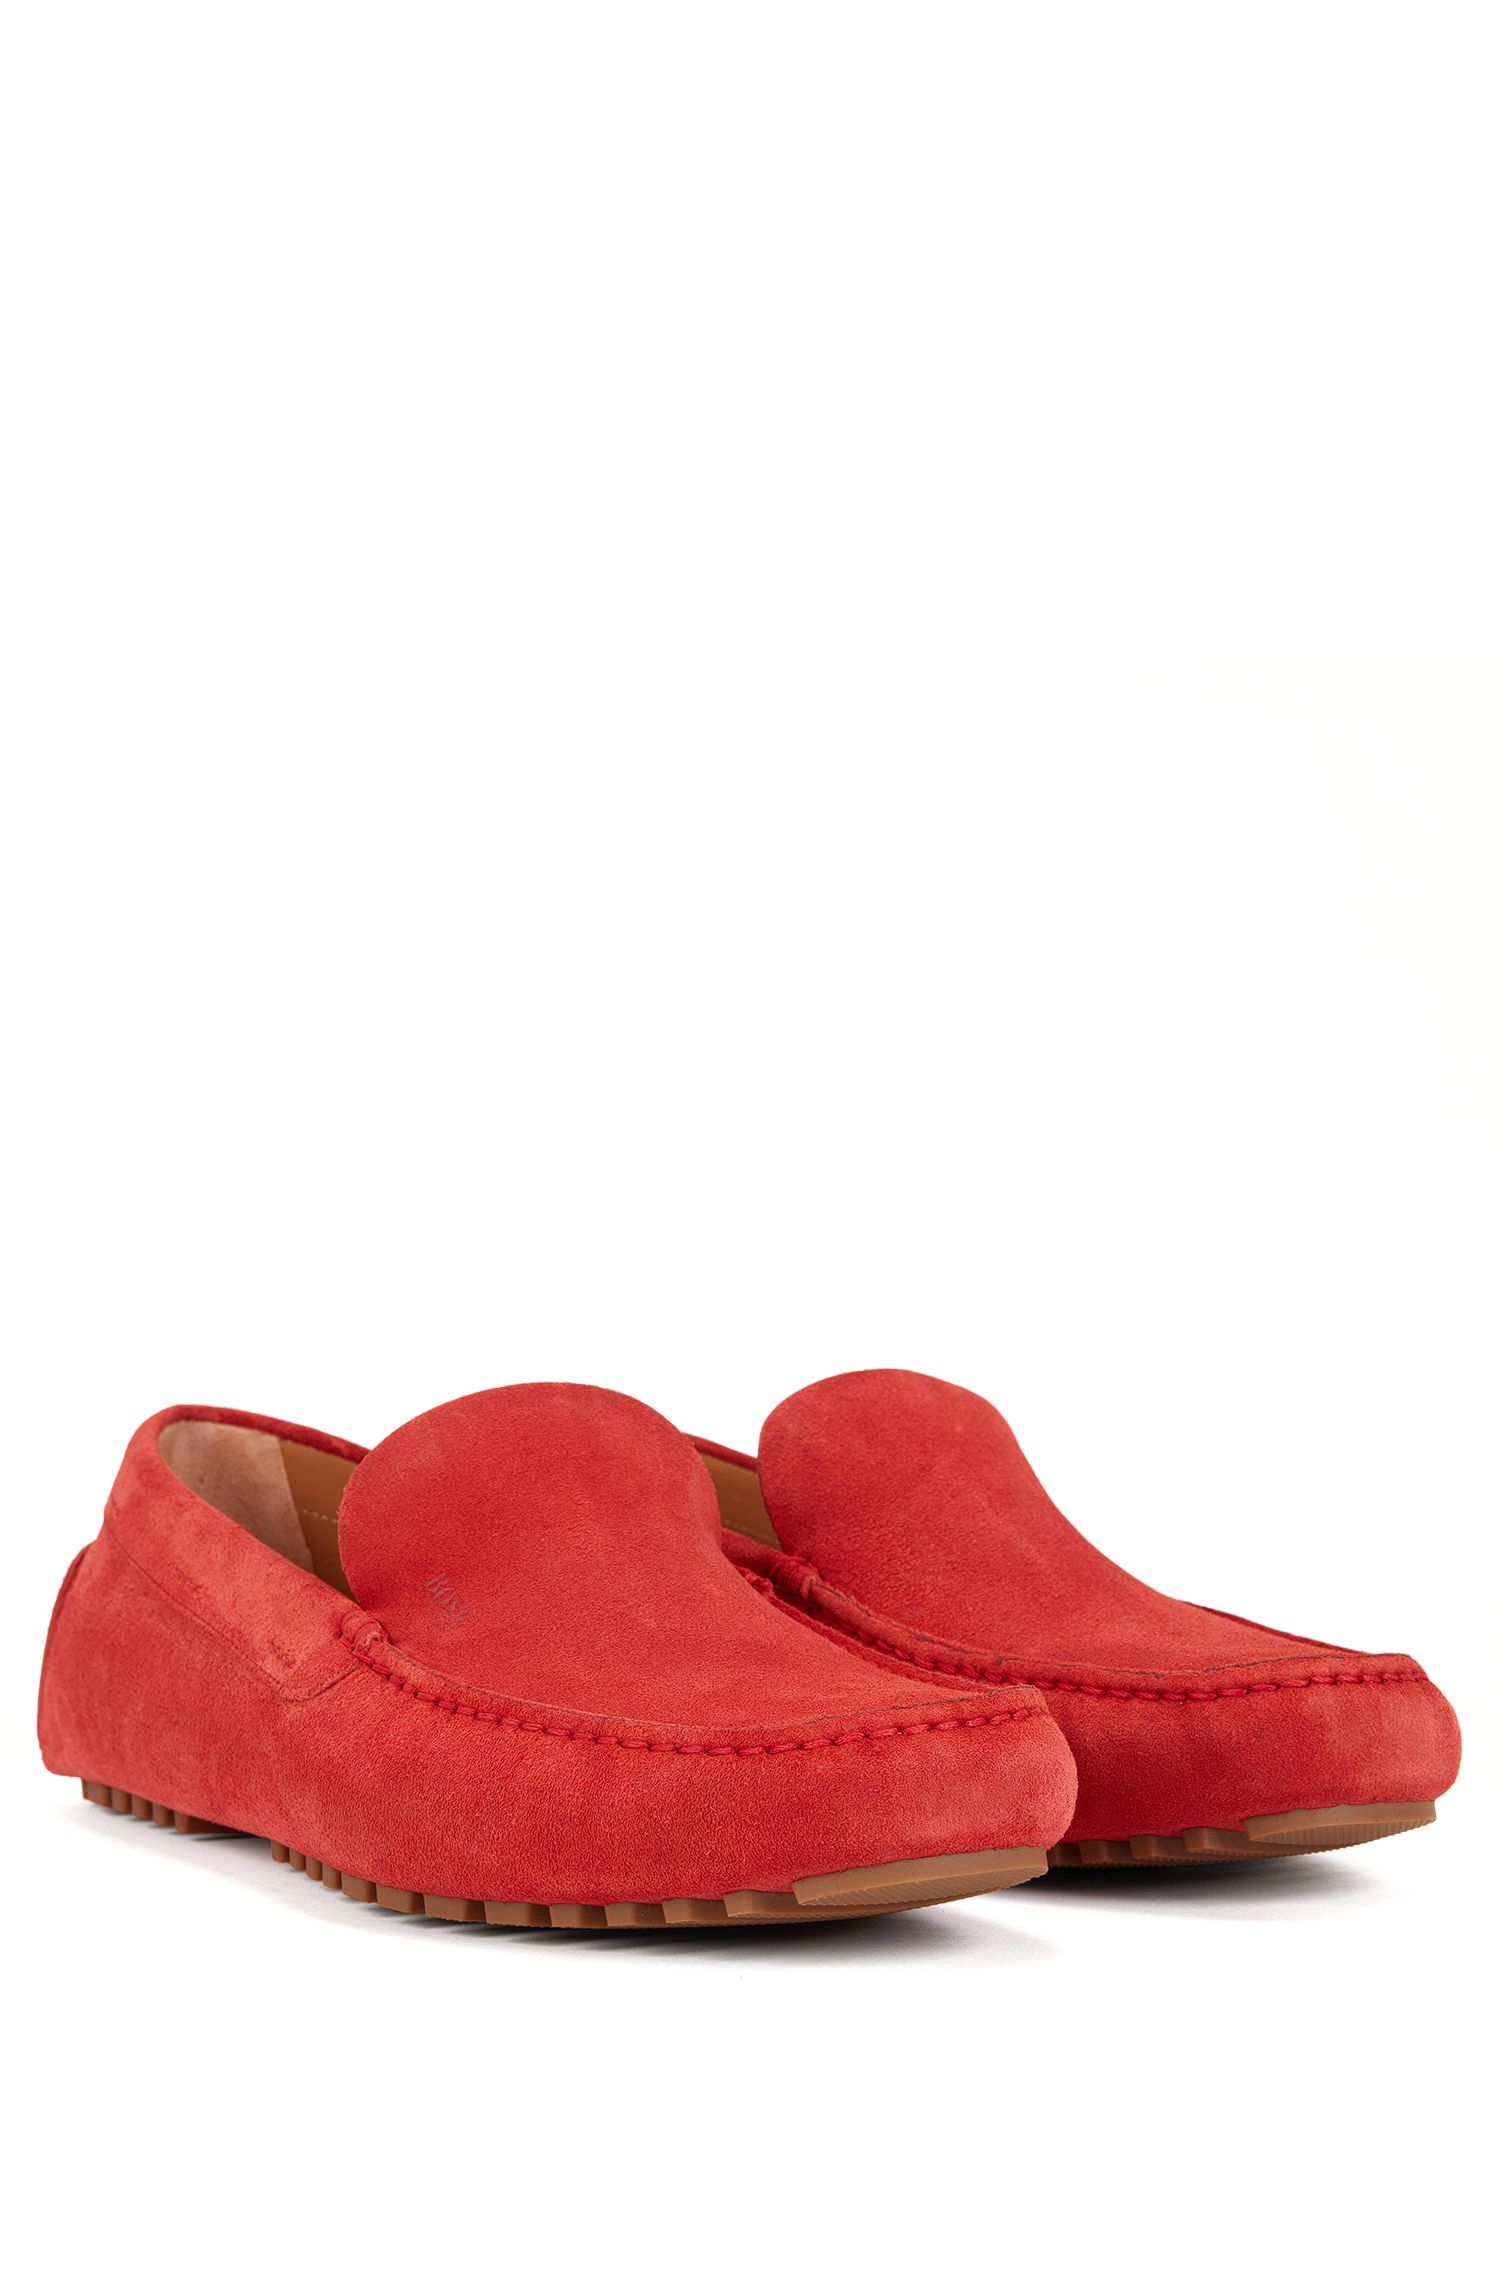 Suede Driving Loafer | Leather Driver